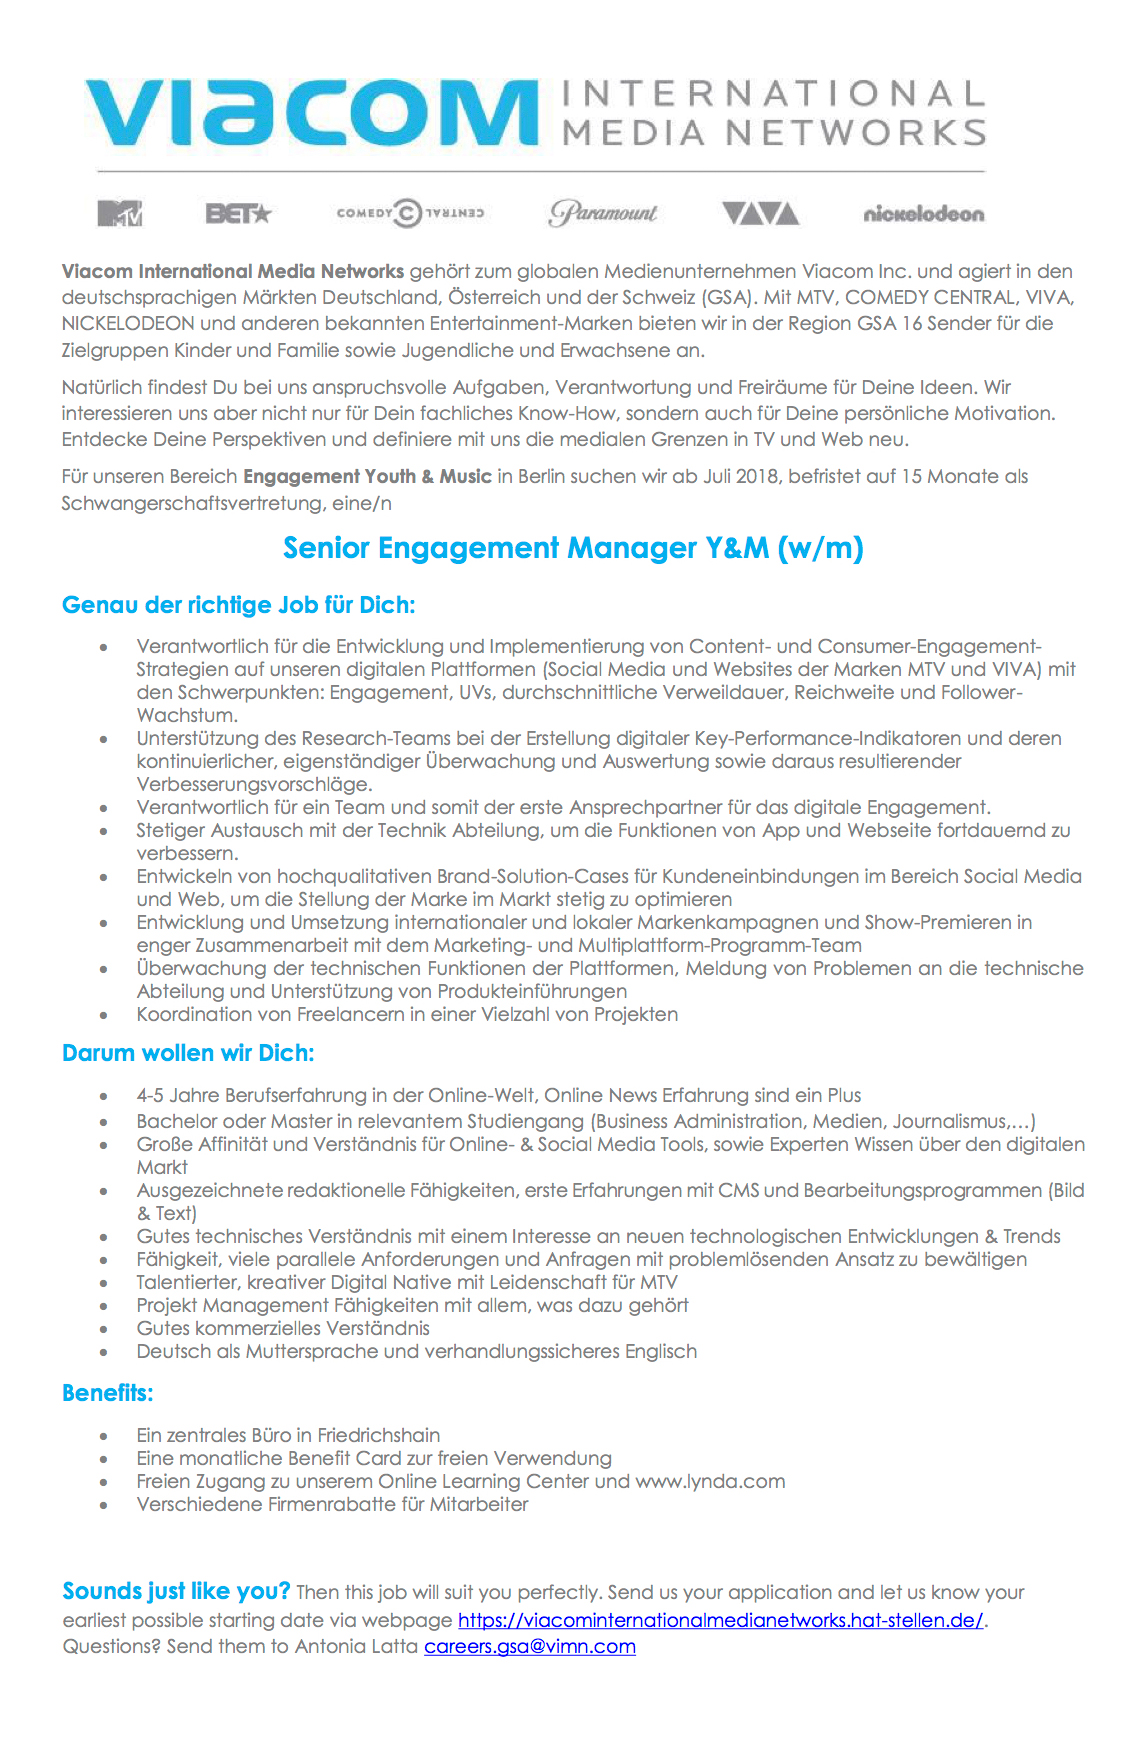 Senior Engagement Manager Y&M (w/m)